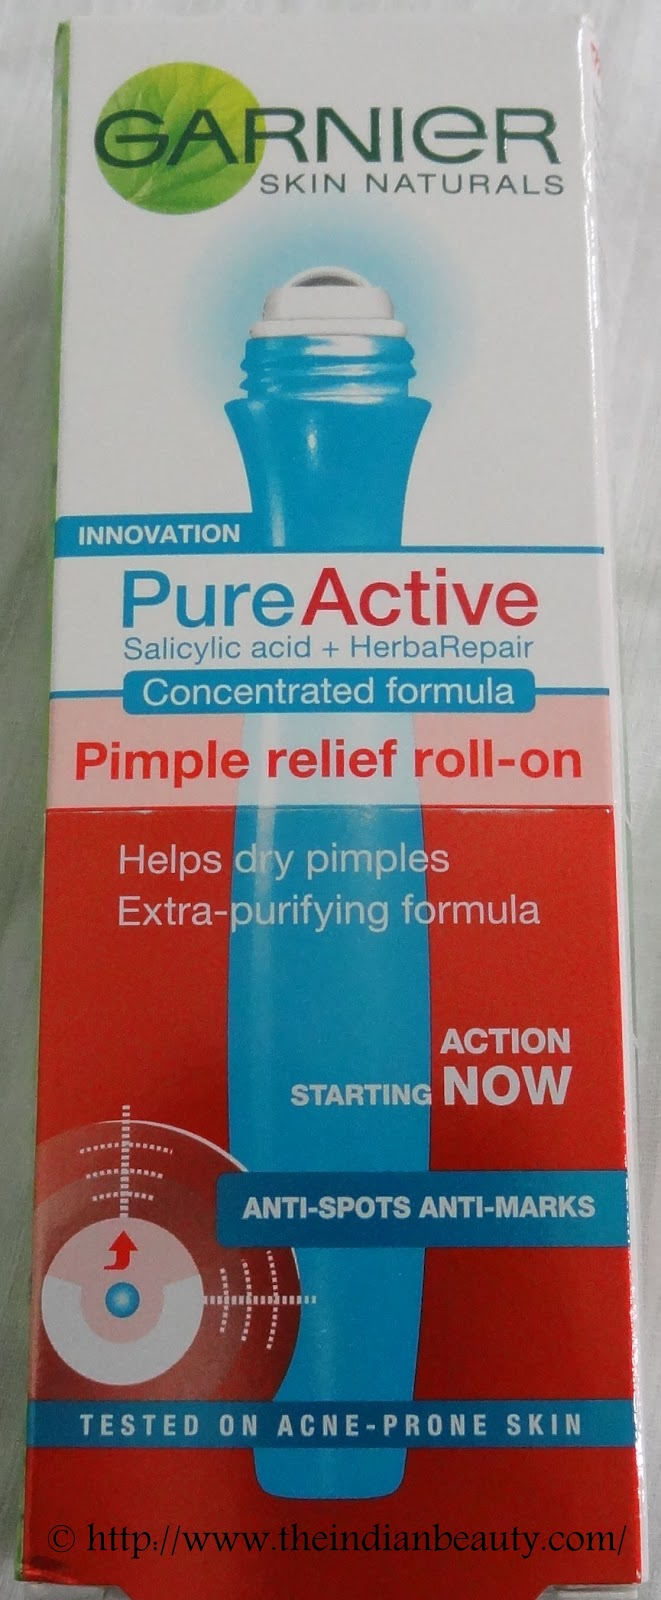 Garnier Pure Active Pimple Relief Roll On Review And Comparison With Extra Strong Control Pen